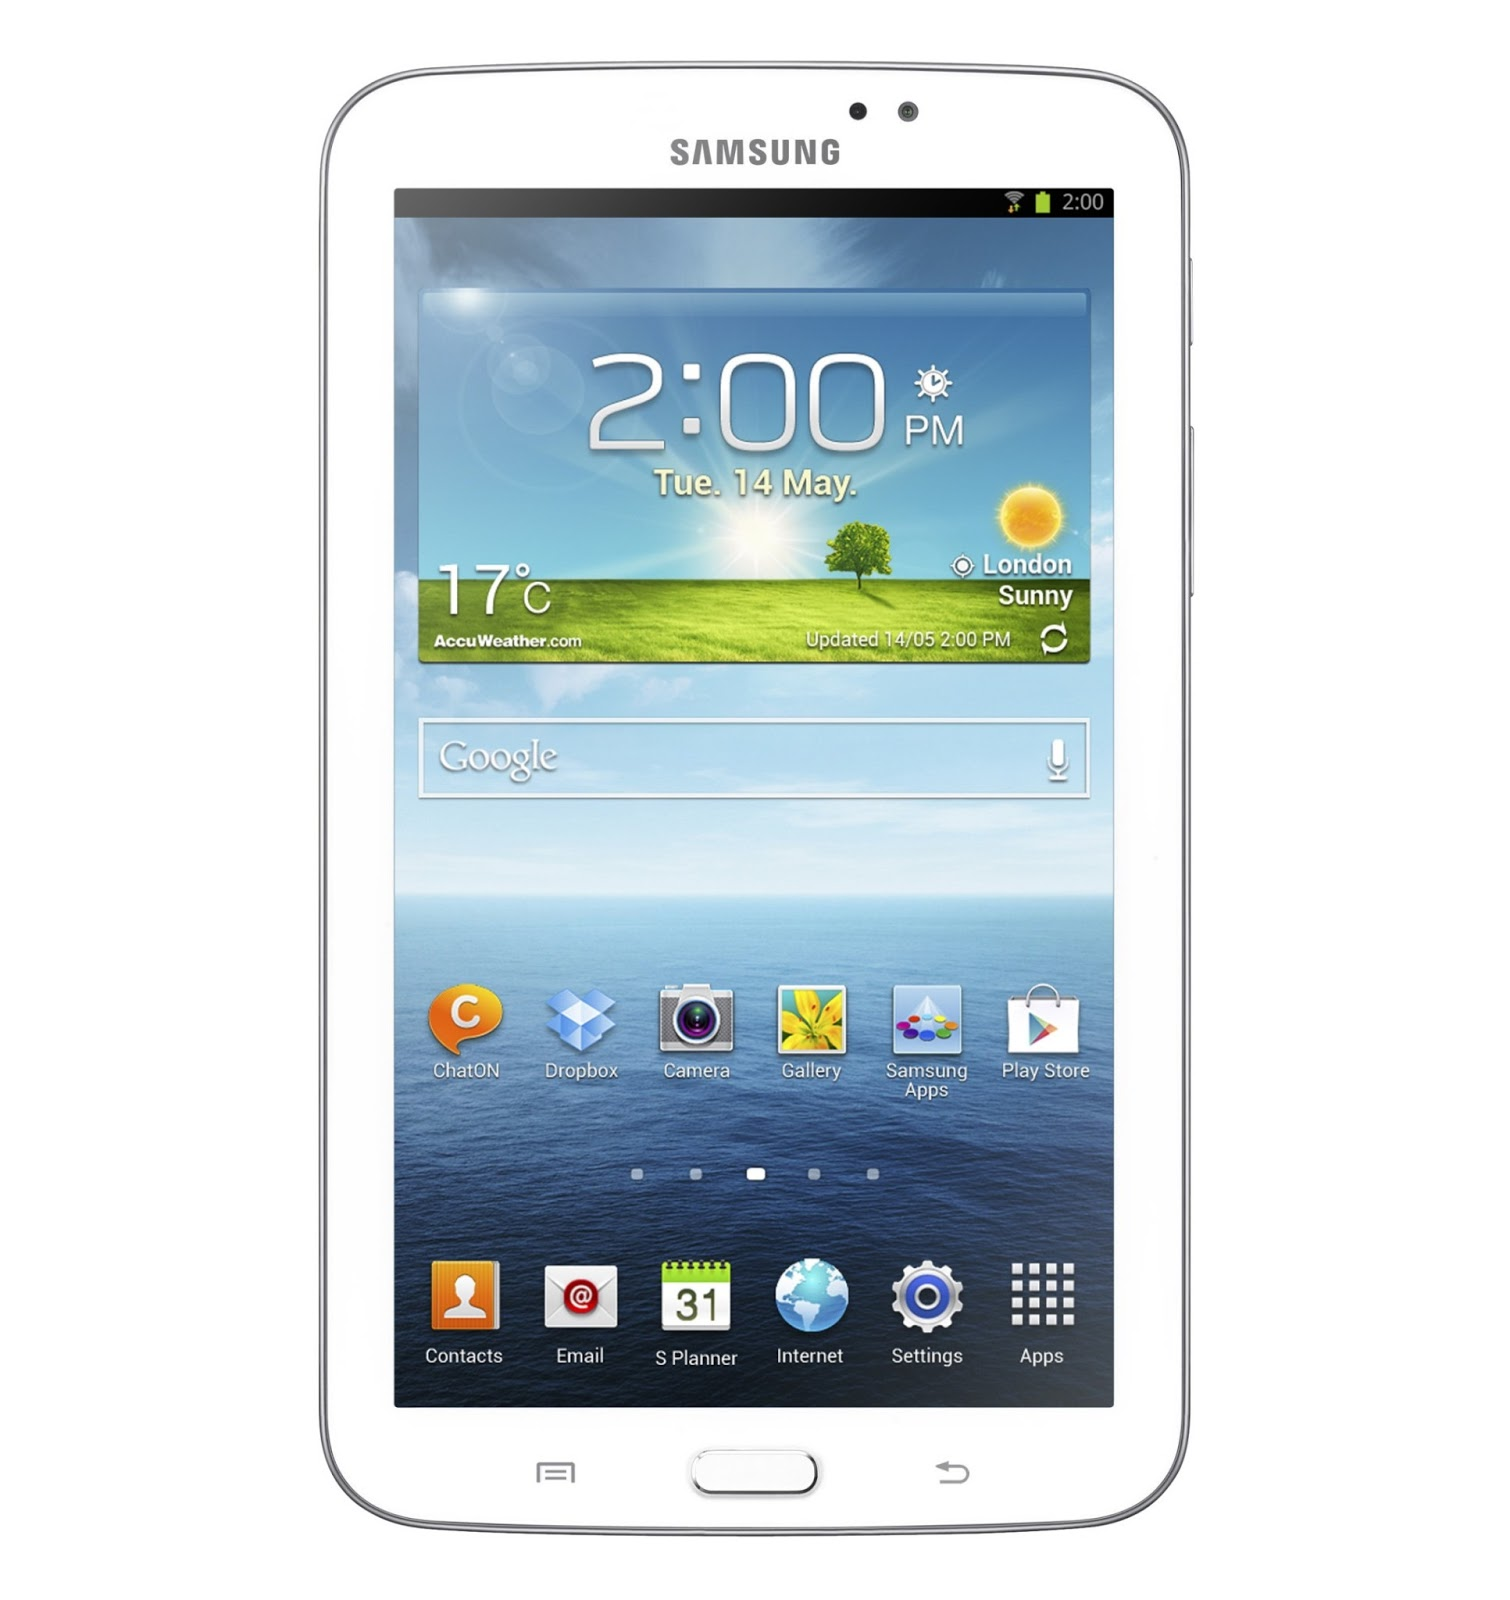 The Galaxy Tab 3 with 7-inch